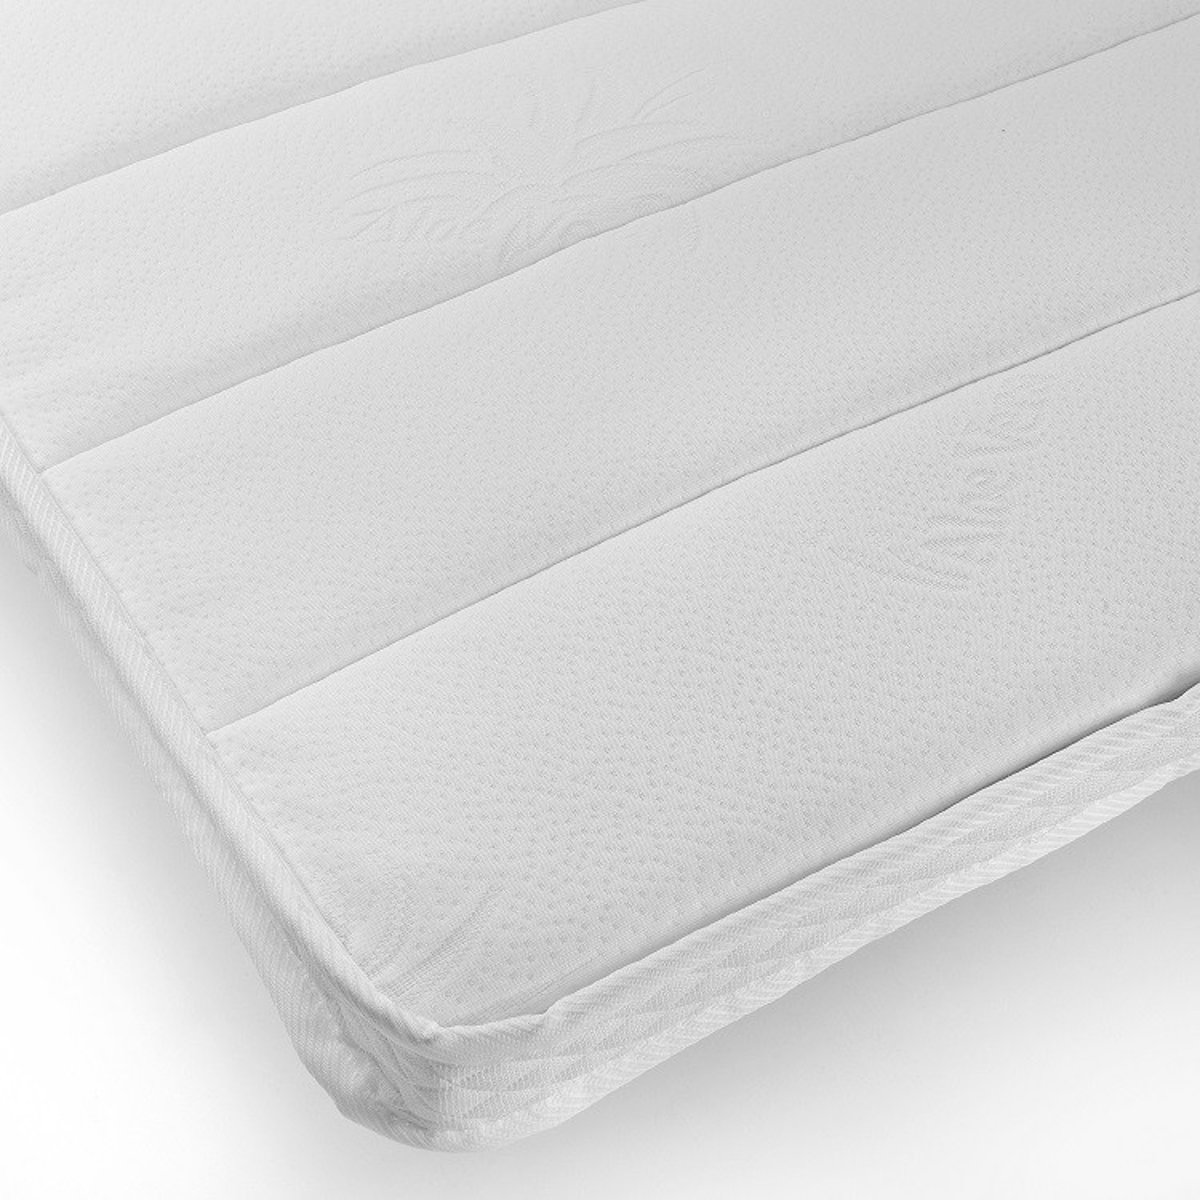 Matrastopper Voor Caravan.Bol Com Topdekmatras Topper 180x210 Polyether Sg40 6cm Medium